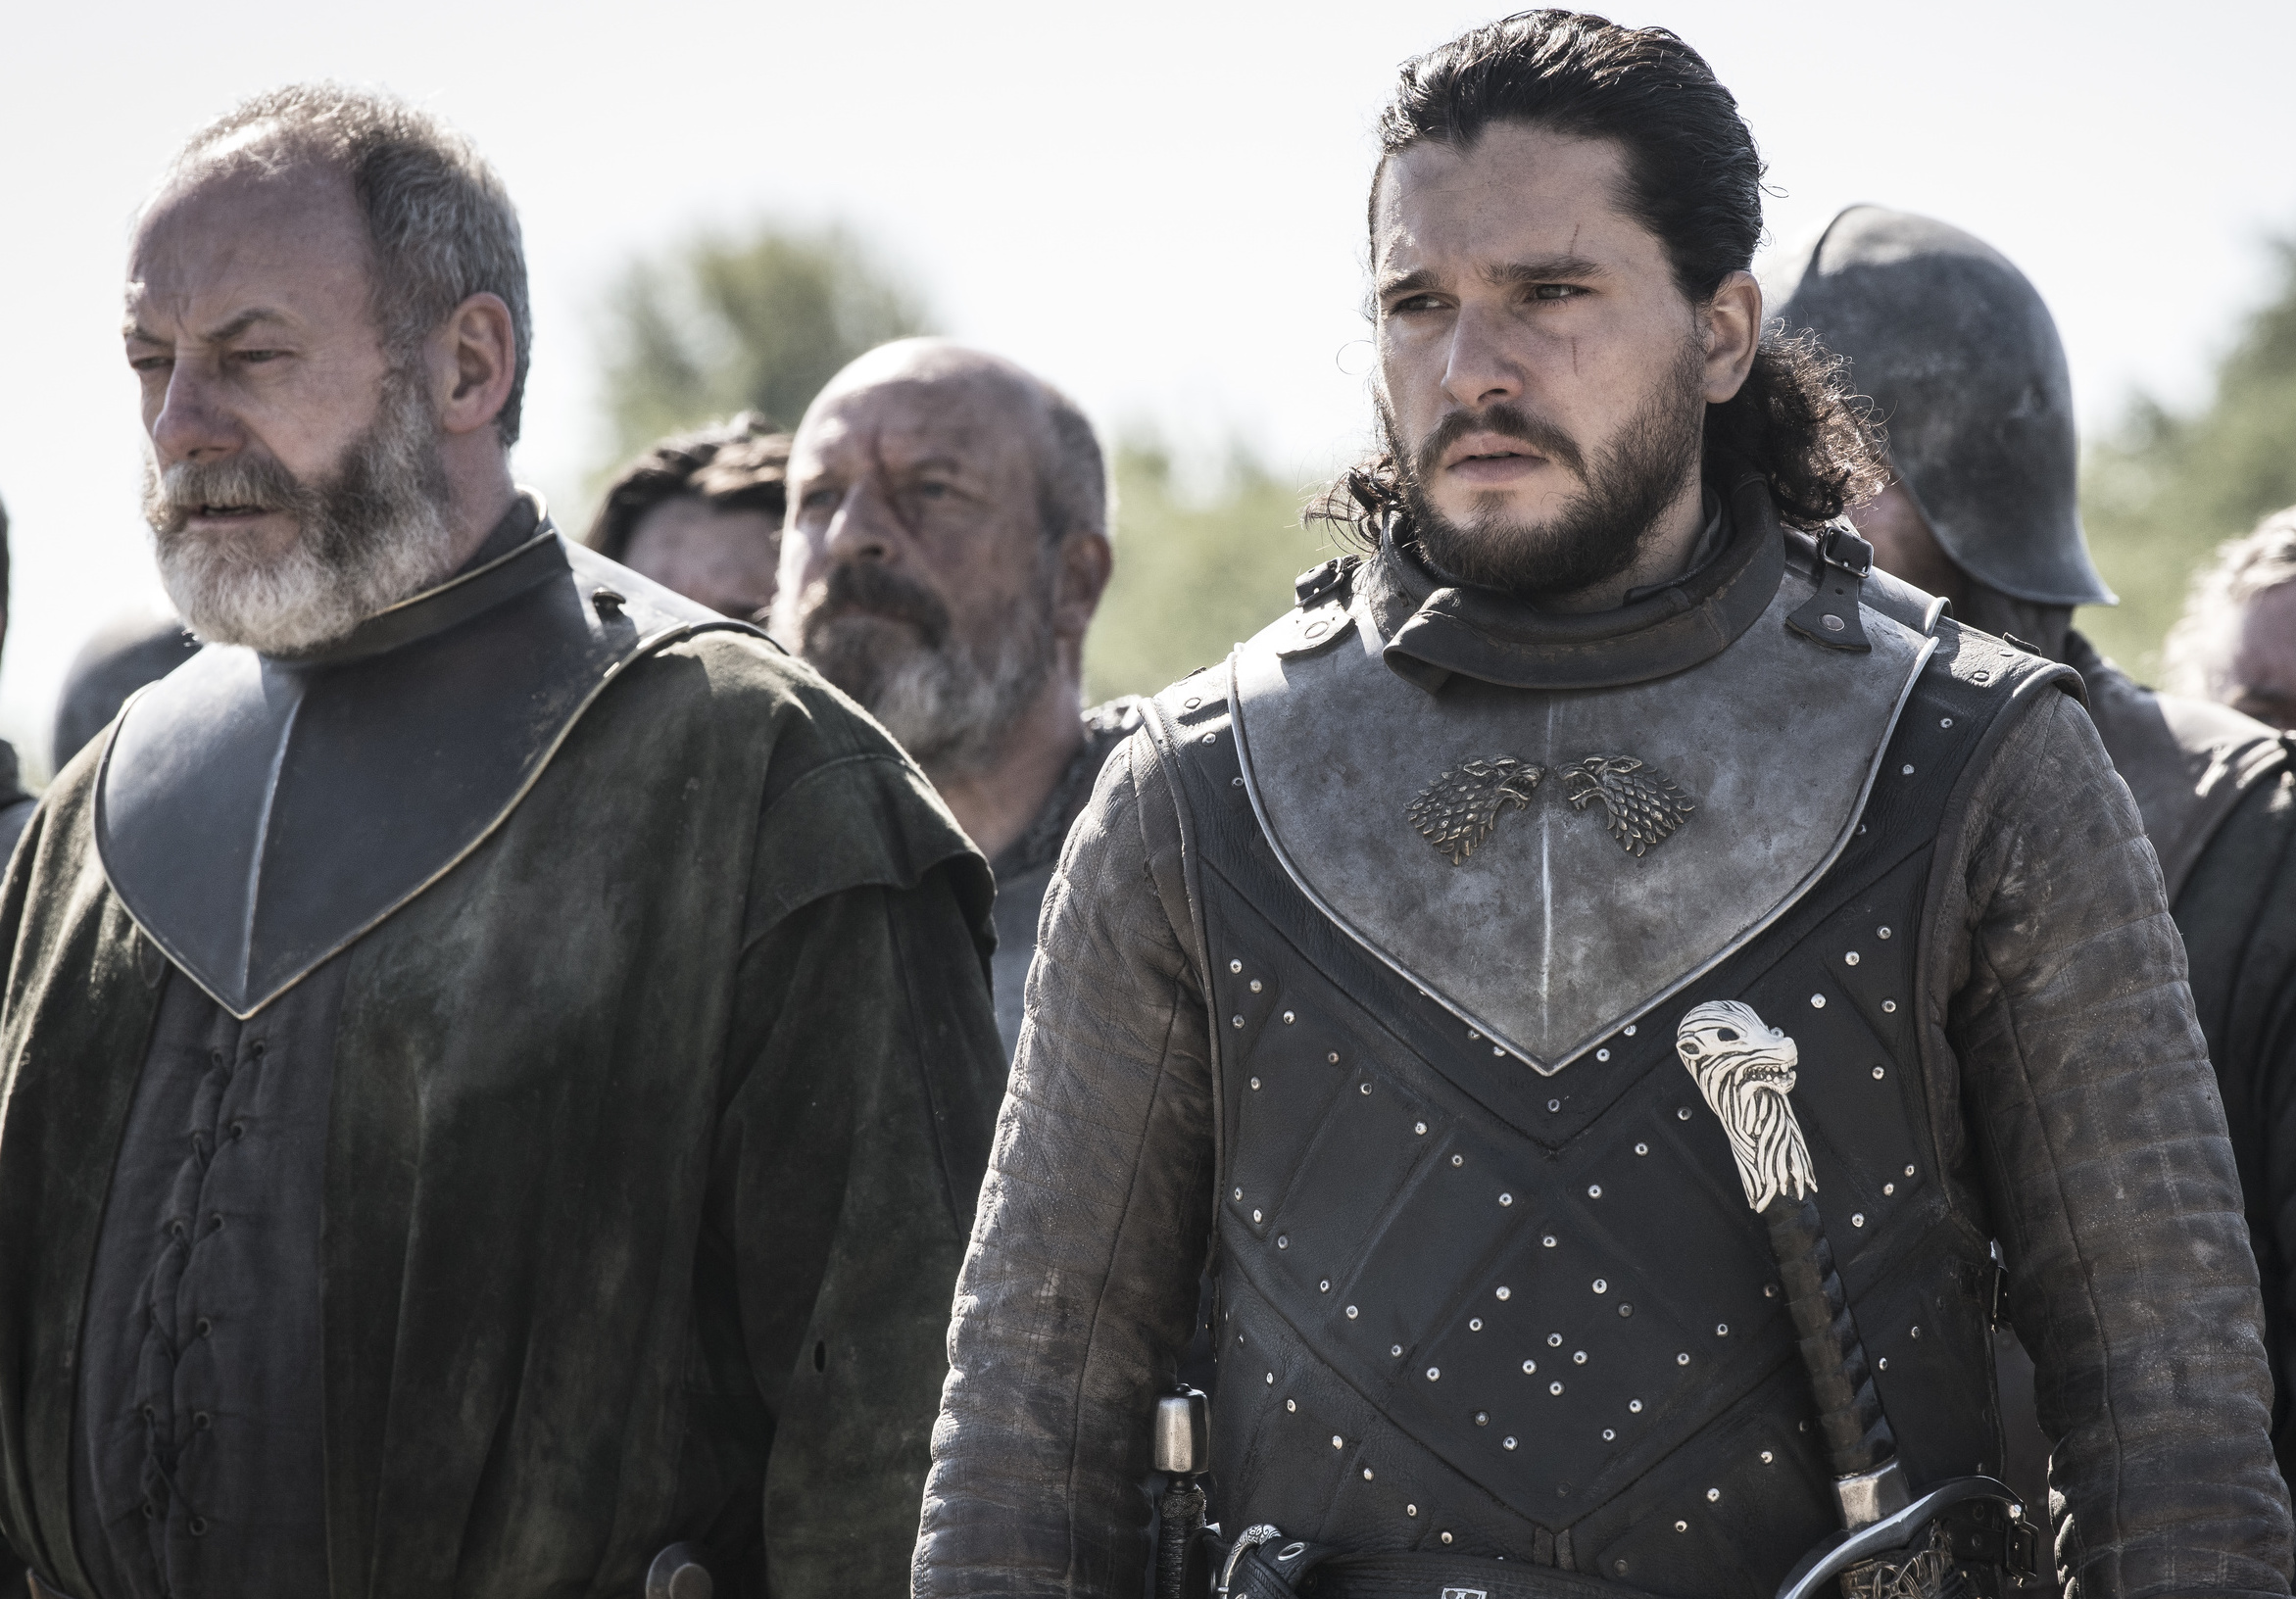 'Game of Thrones' Star Kit Harington Joins the Marvel Cinematic Universe